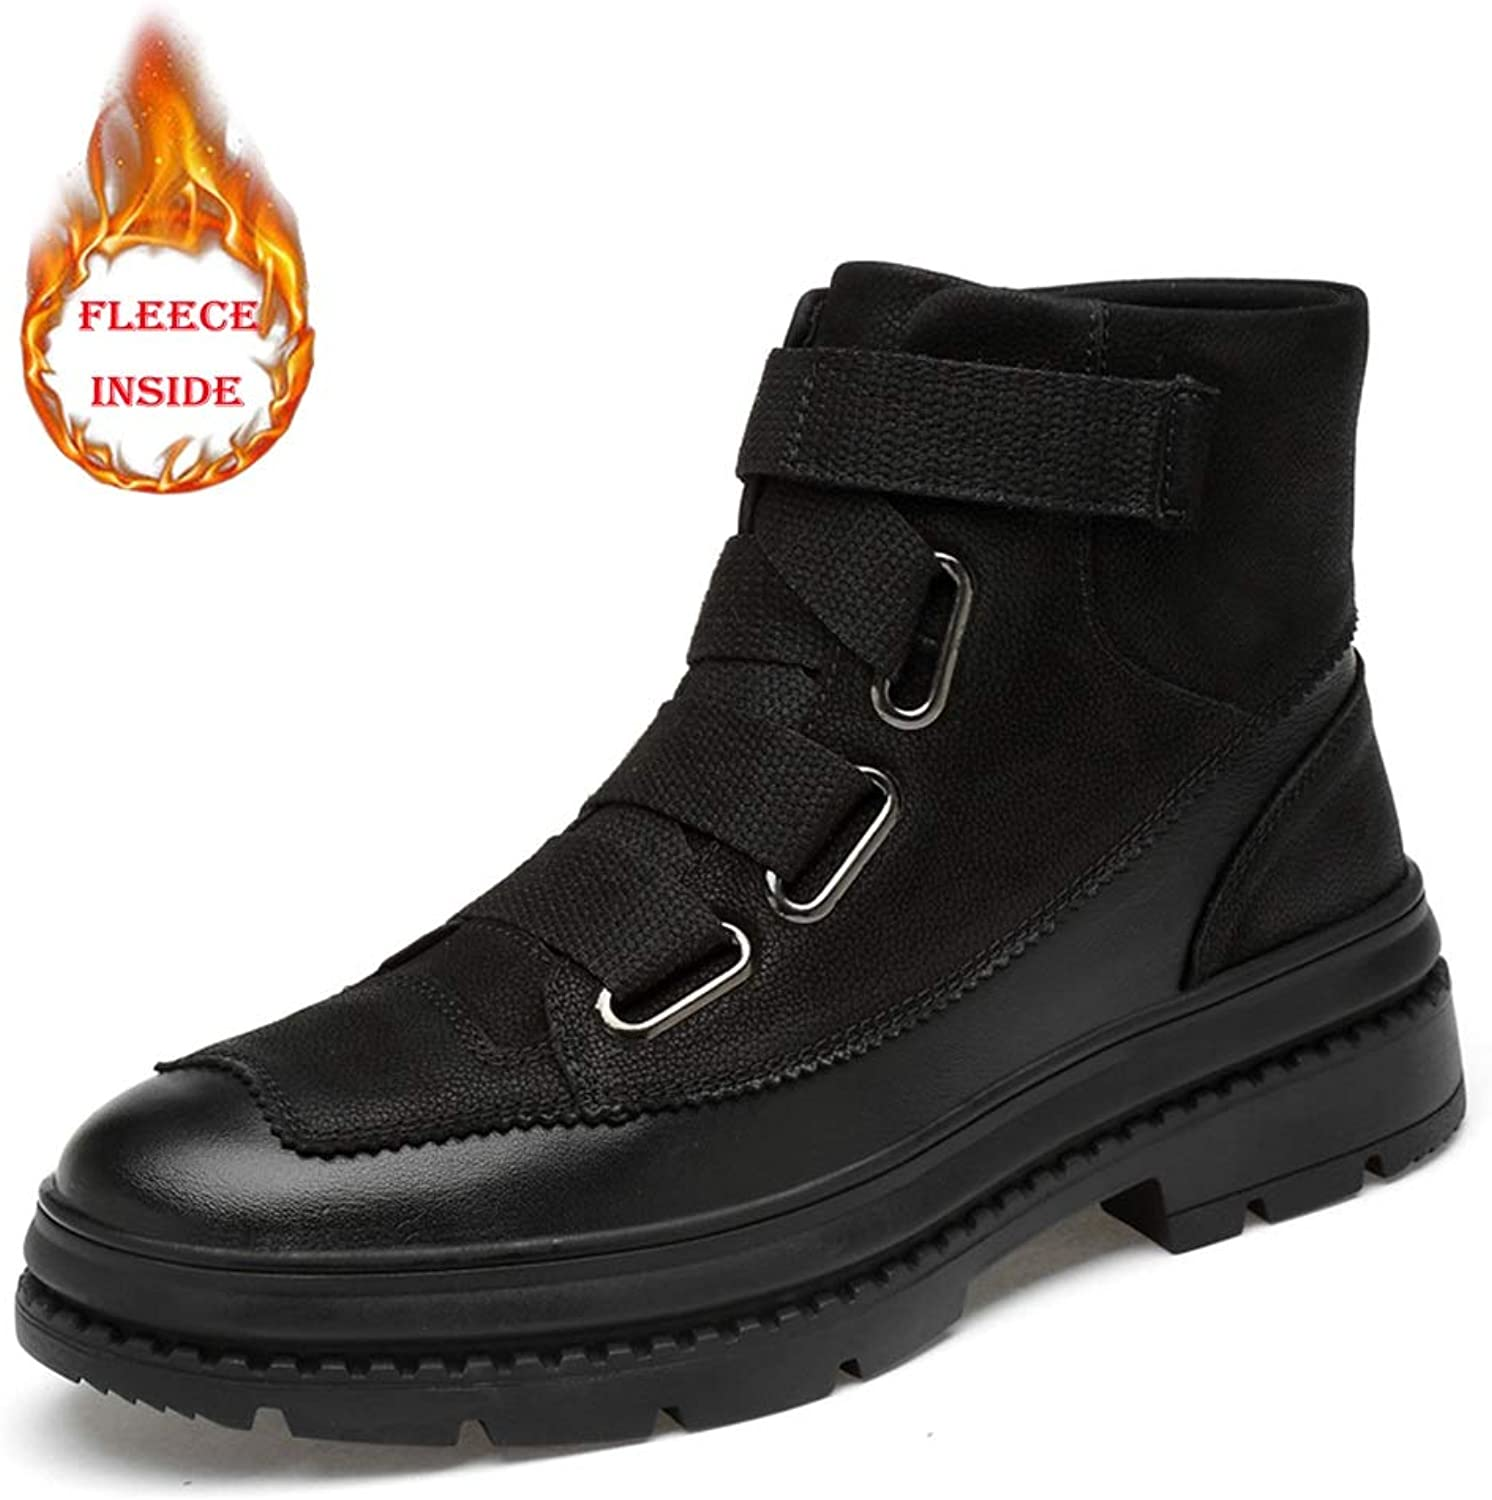 Shuo lan Men's Fashion Ankle Boots Leisure Classic Comfort High Top Outdoor Outsole Martin Boots(Fleece Lined Optional)